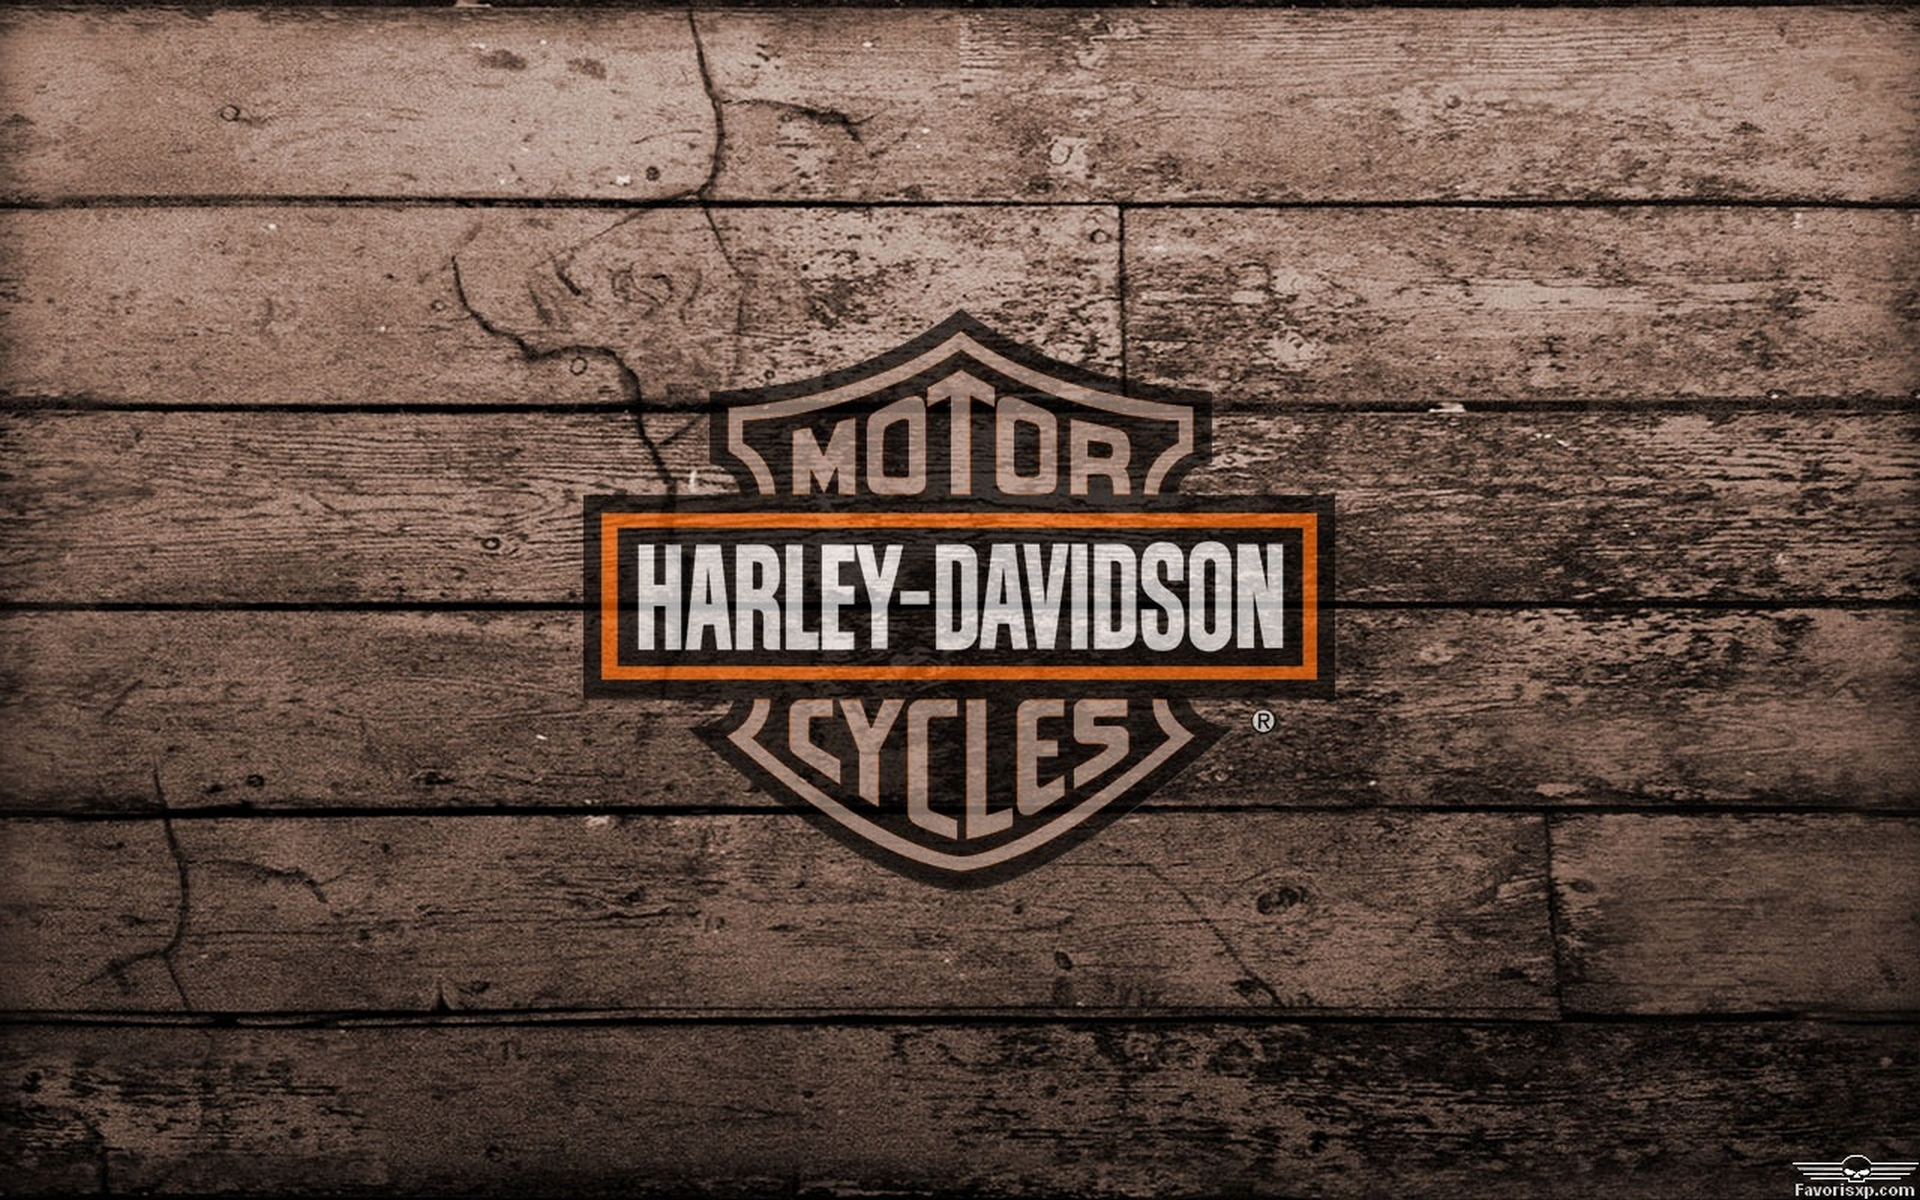 newest harley davidson logo wallpapers - photo #19